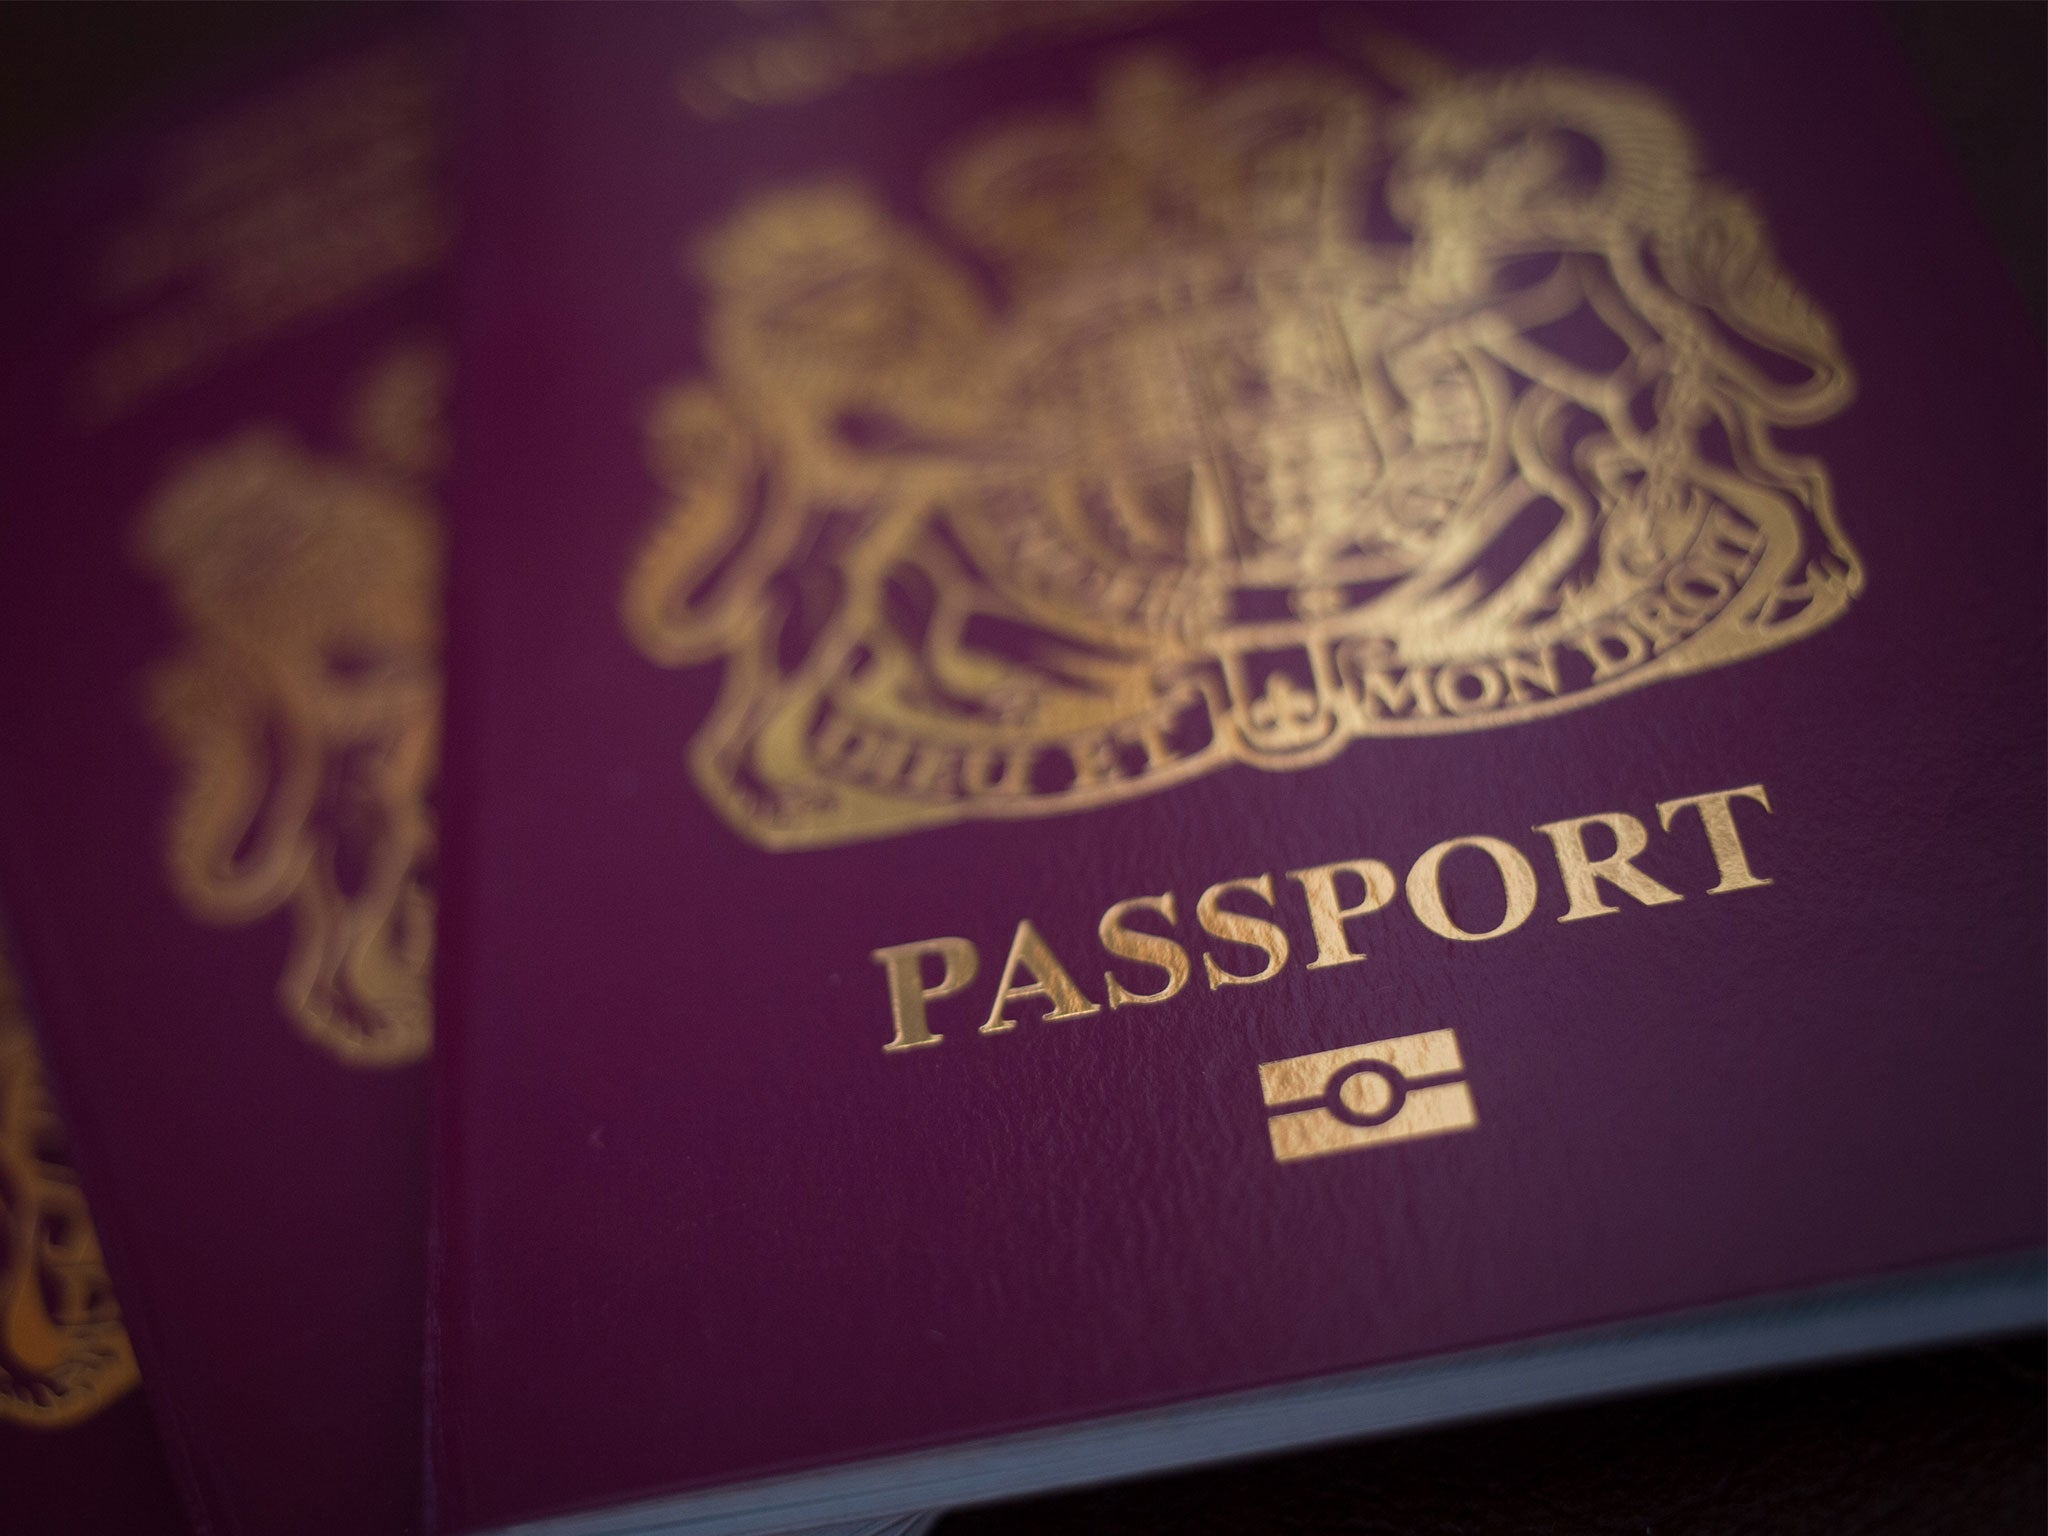 Home Office immigration delays nearly double as thousands